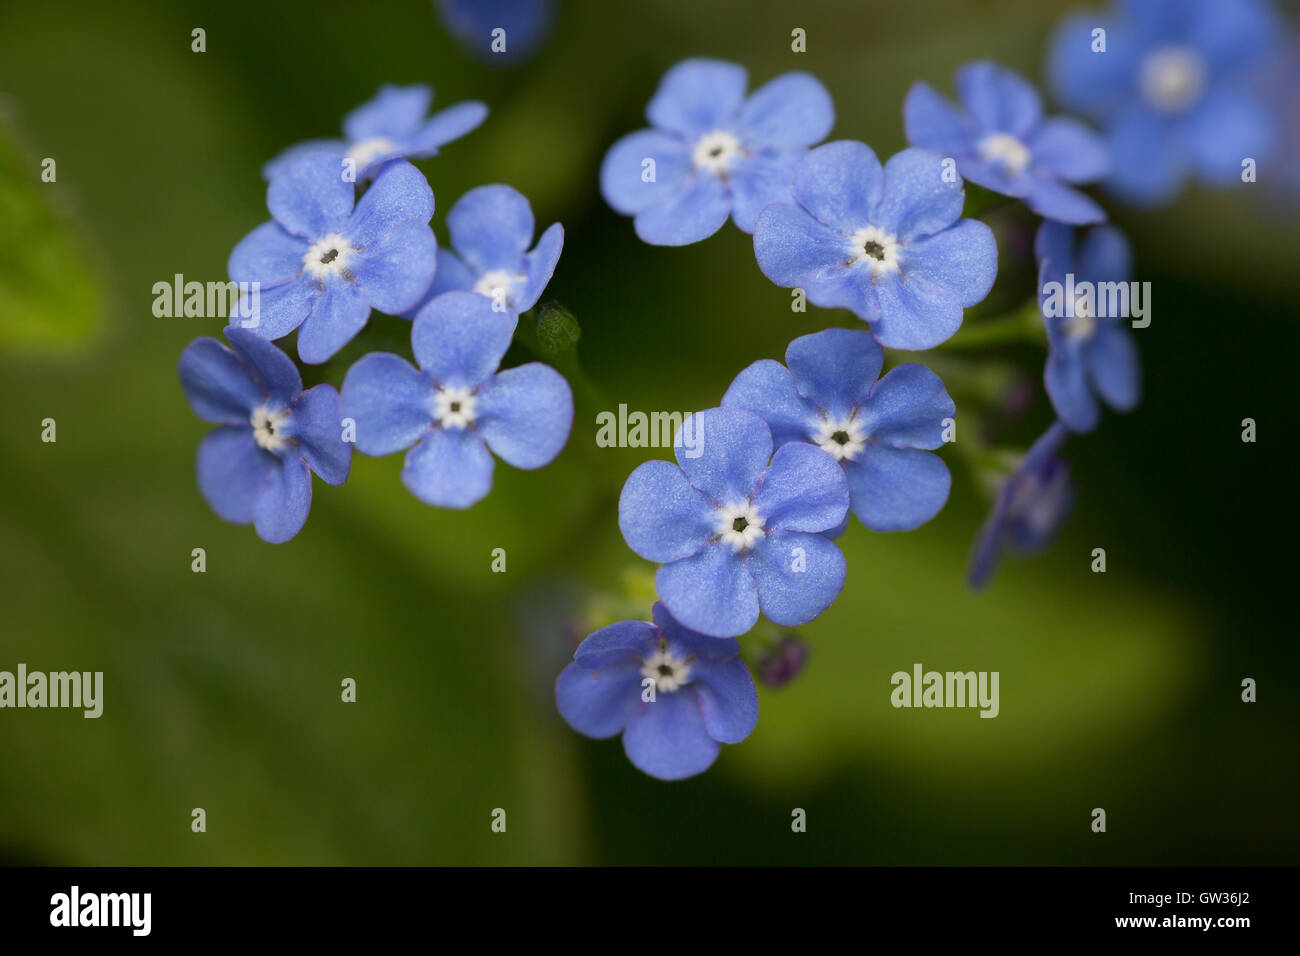 Close-up of Blue Forget-Me-Not Flowers - Stock Image